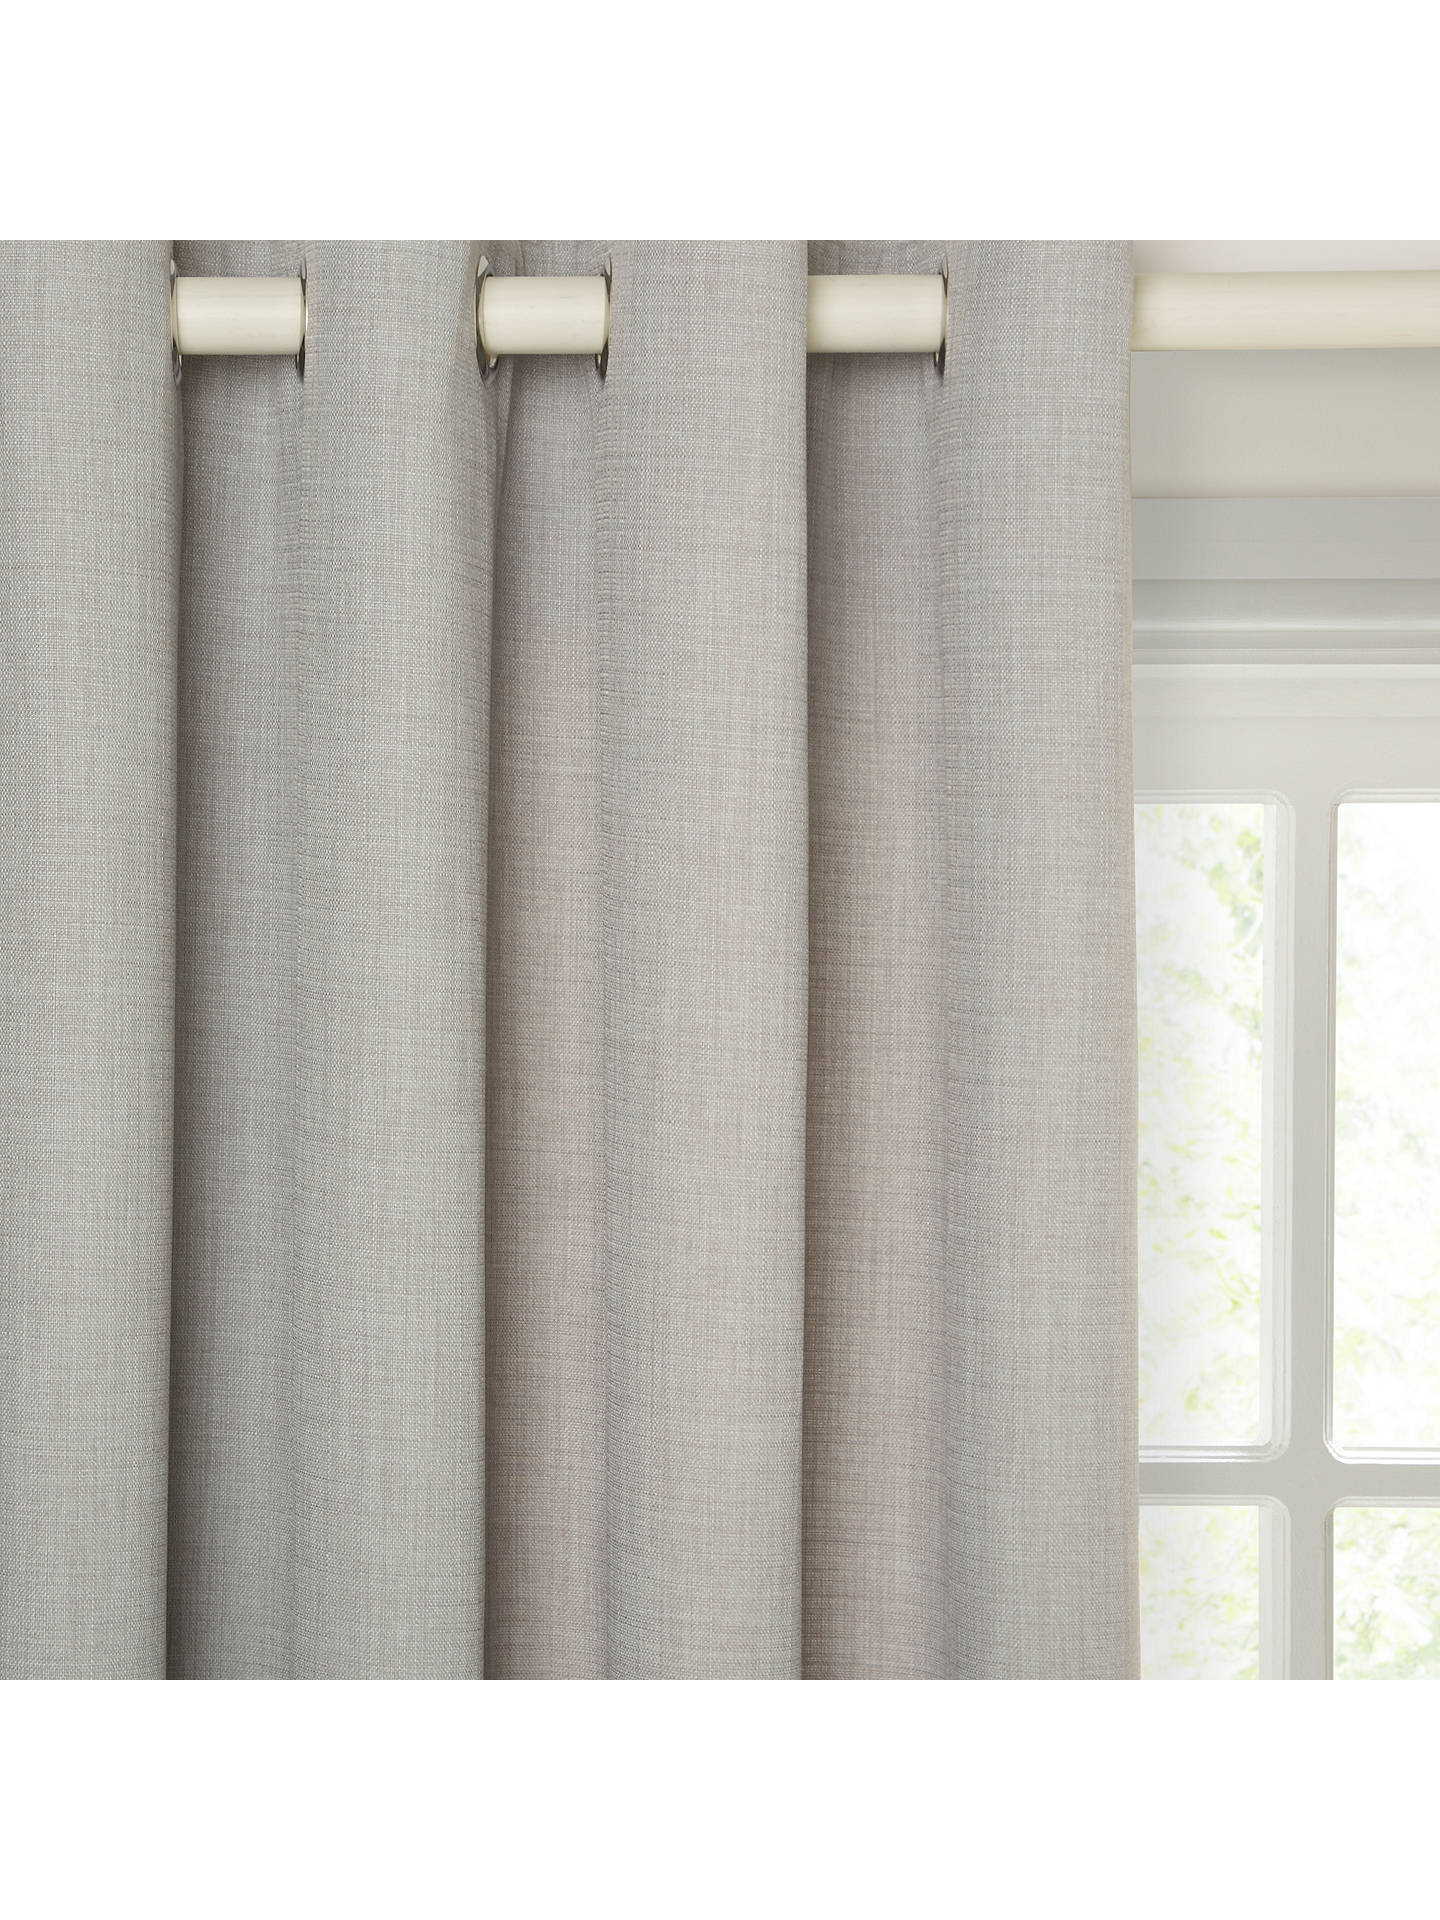 Buy John Lewis & Partners Barathea Pair Lined Eyelet Curtains, Blue Grey, W117 x Drop 137cm Online at johnlewis.com